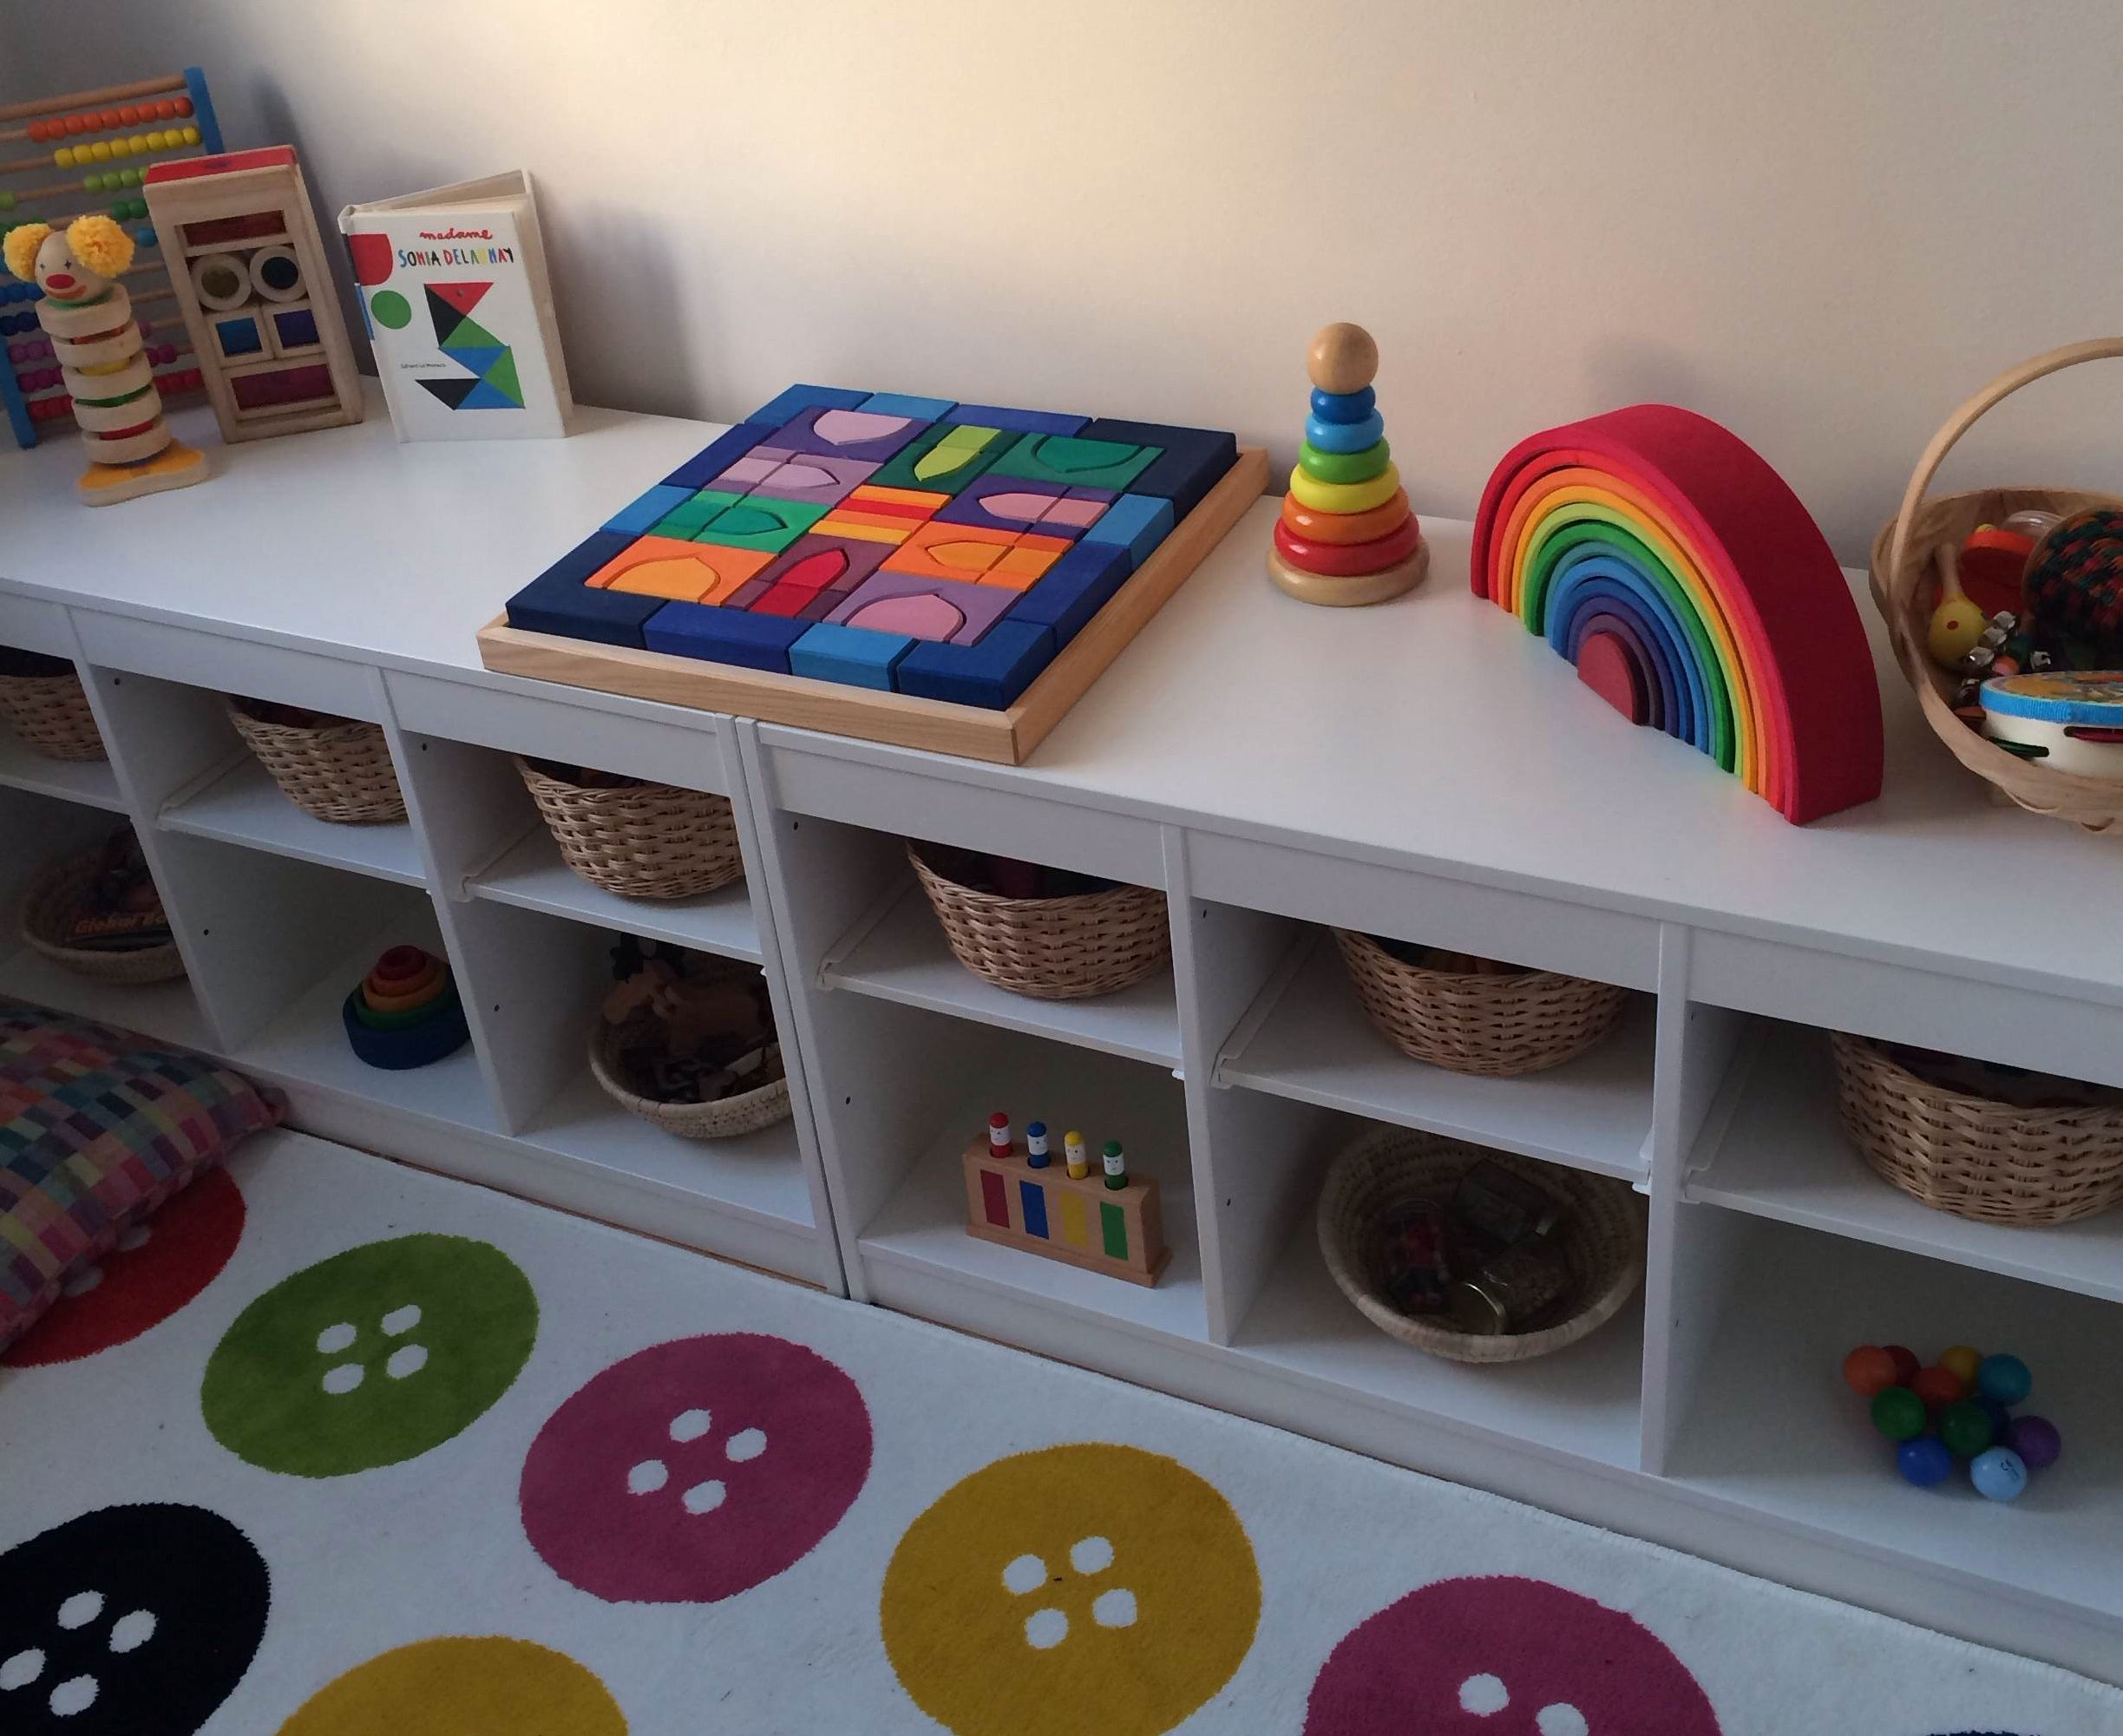 Frida S Shelves Eight And A Half Months Montessori Toddler Bedroom Ikea Toddler Room